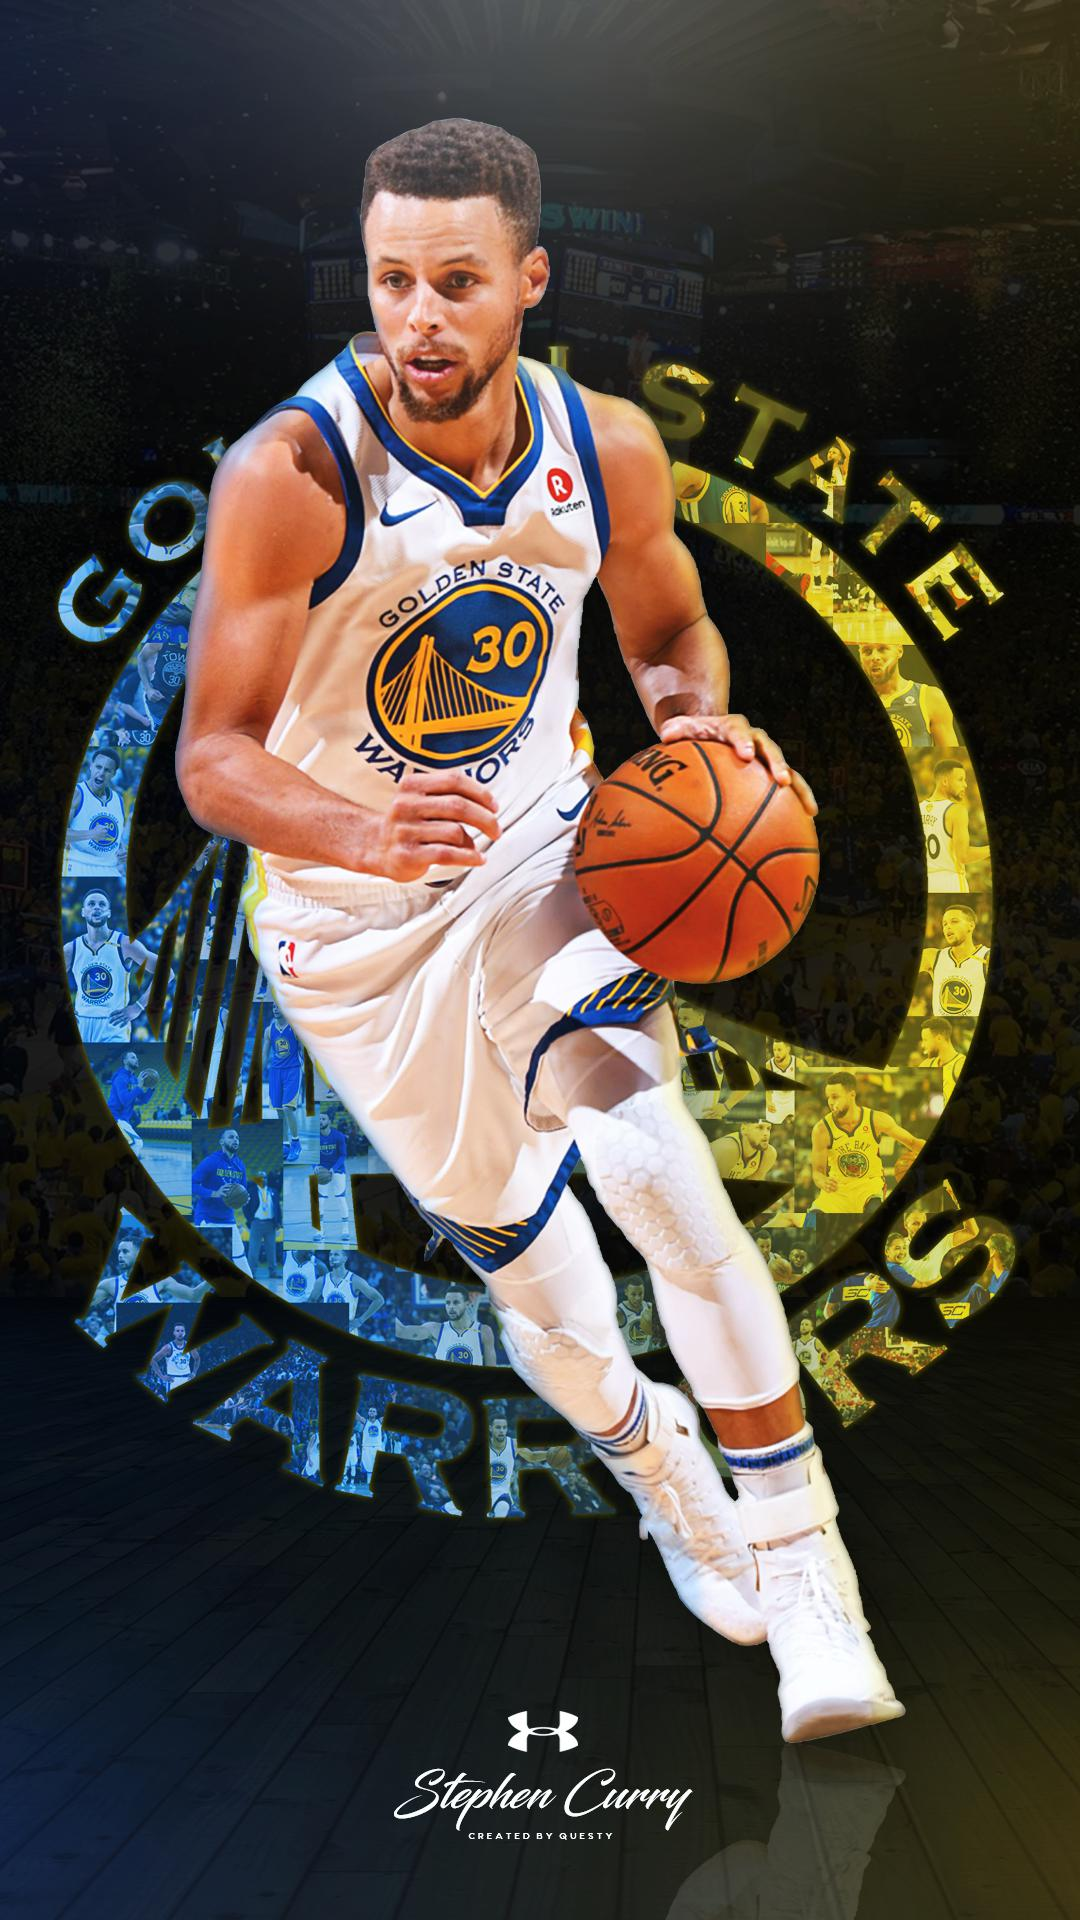 Stephen curry wallpaper Curry wallpaper Stephen curry